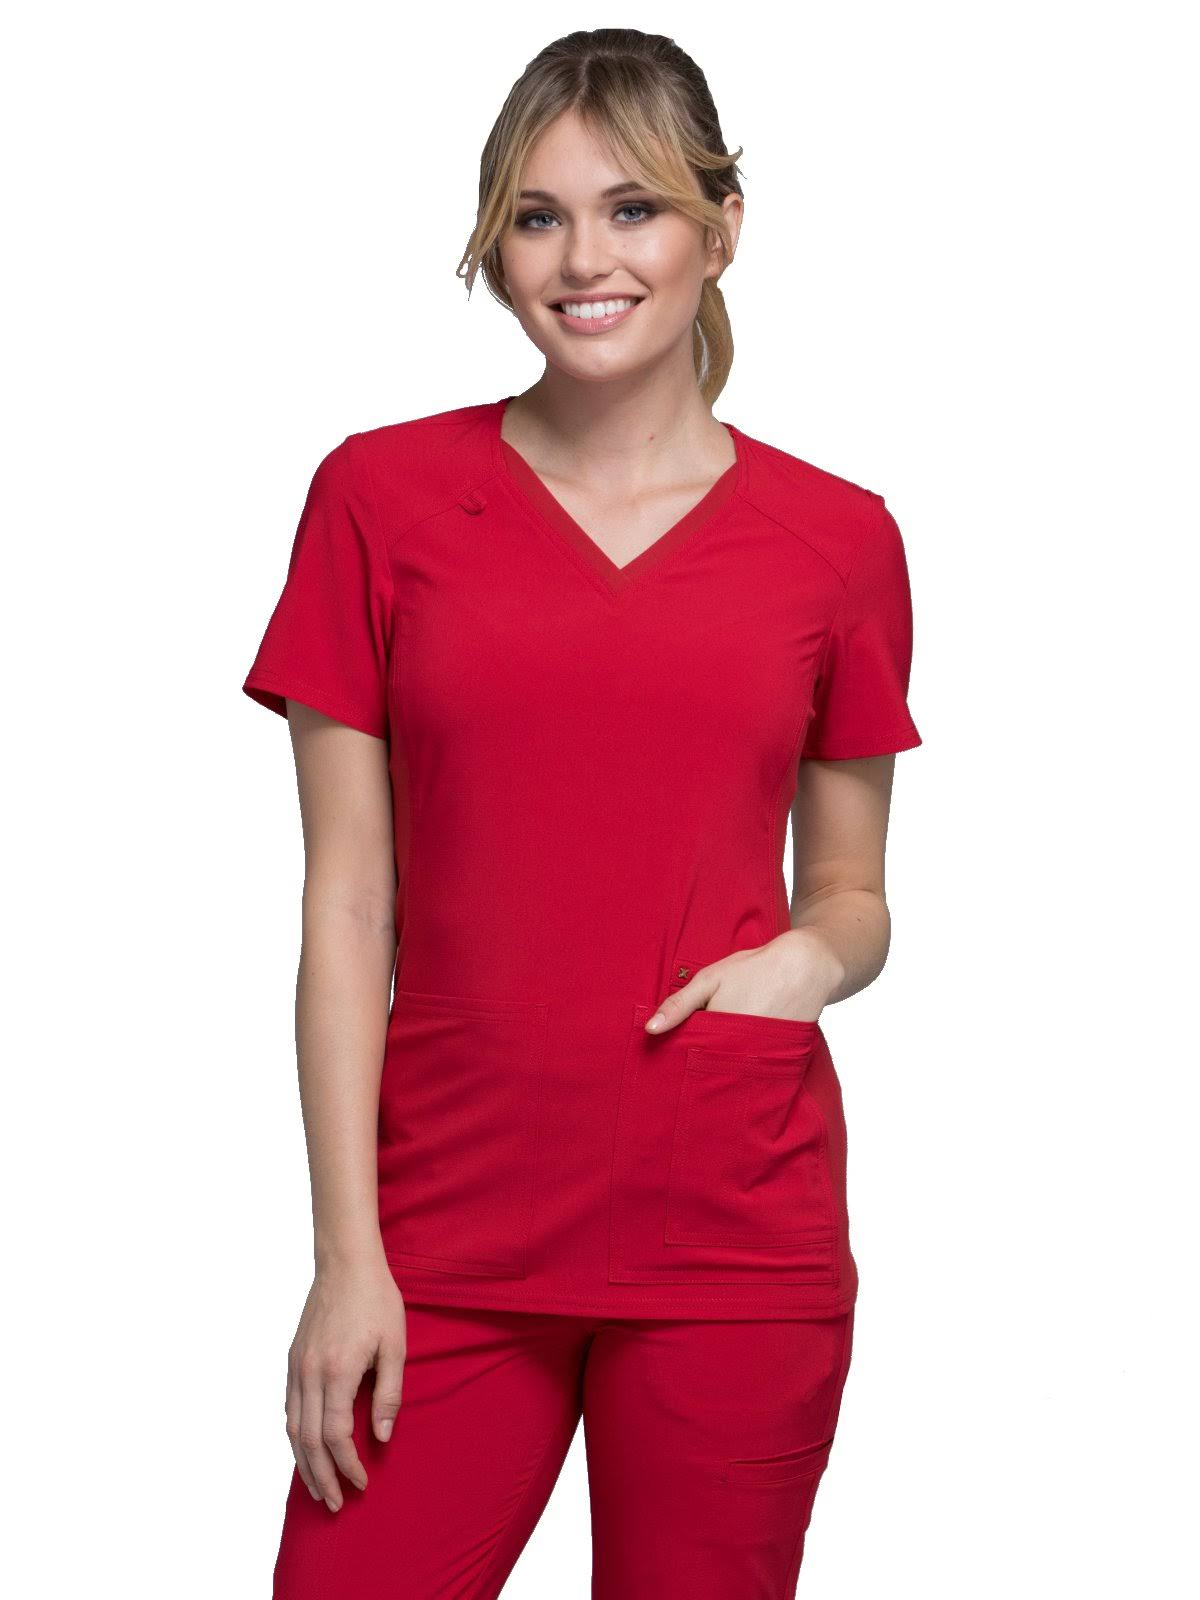 Cherokee CK605 V-Neck Knit Panel Top - Red - S